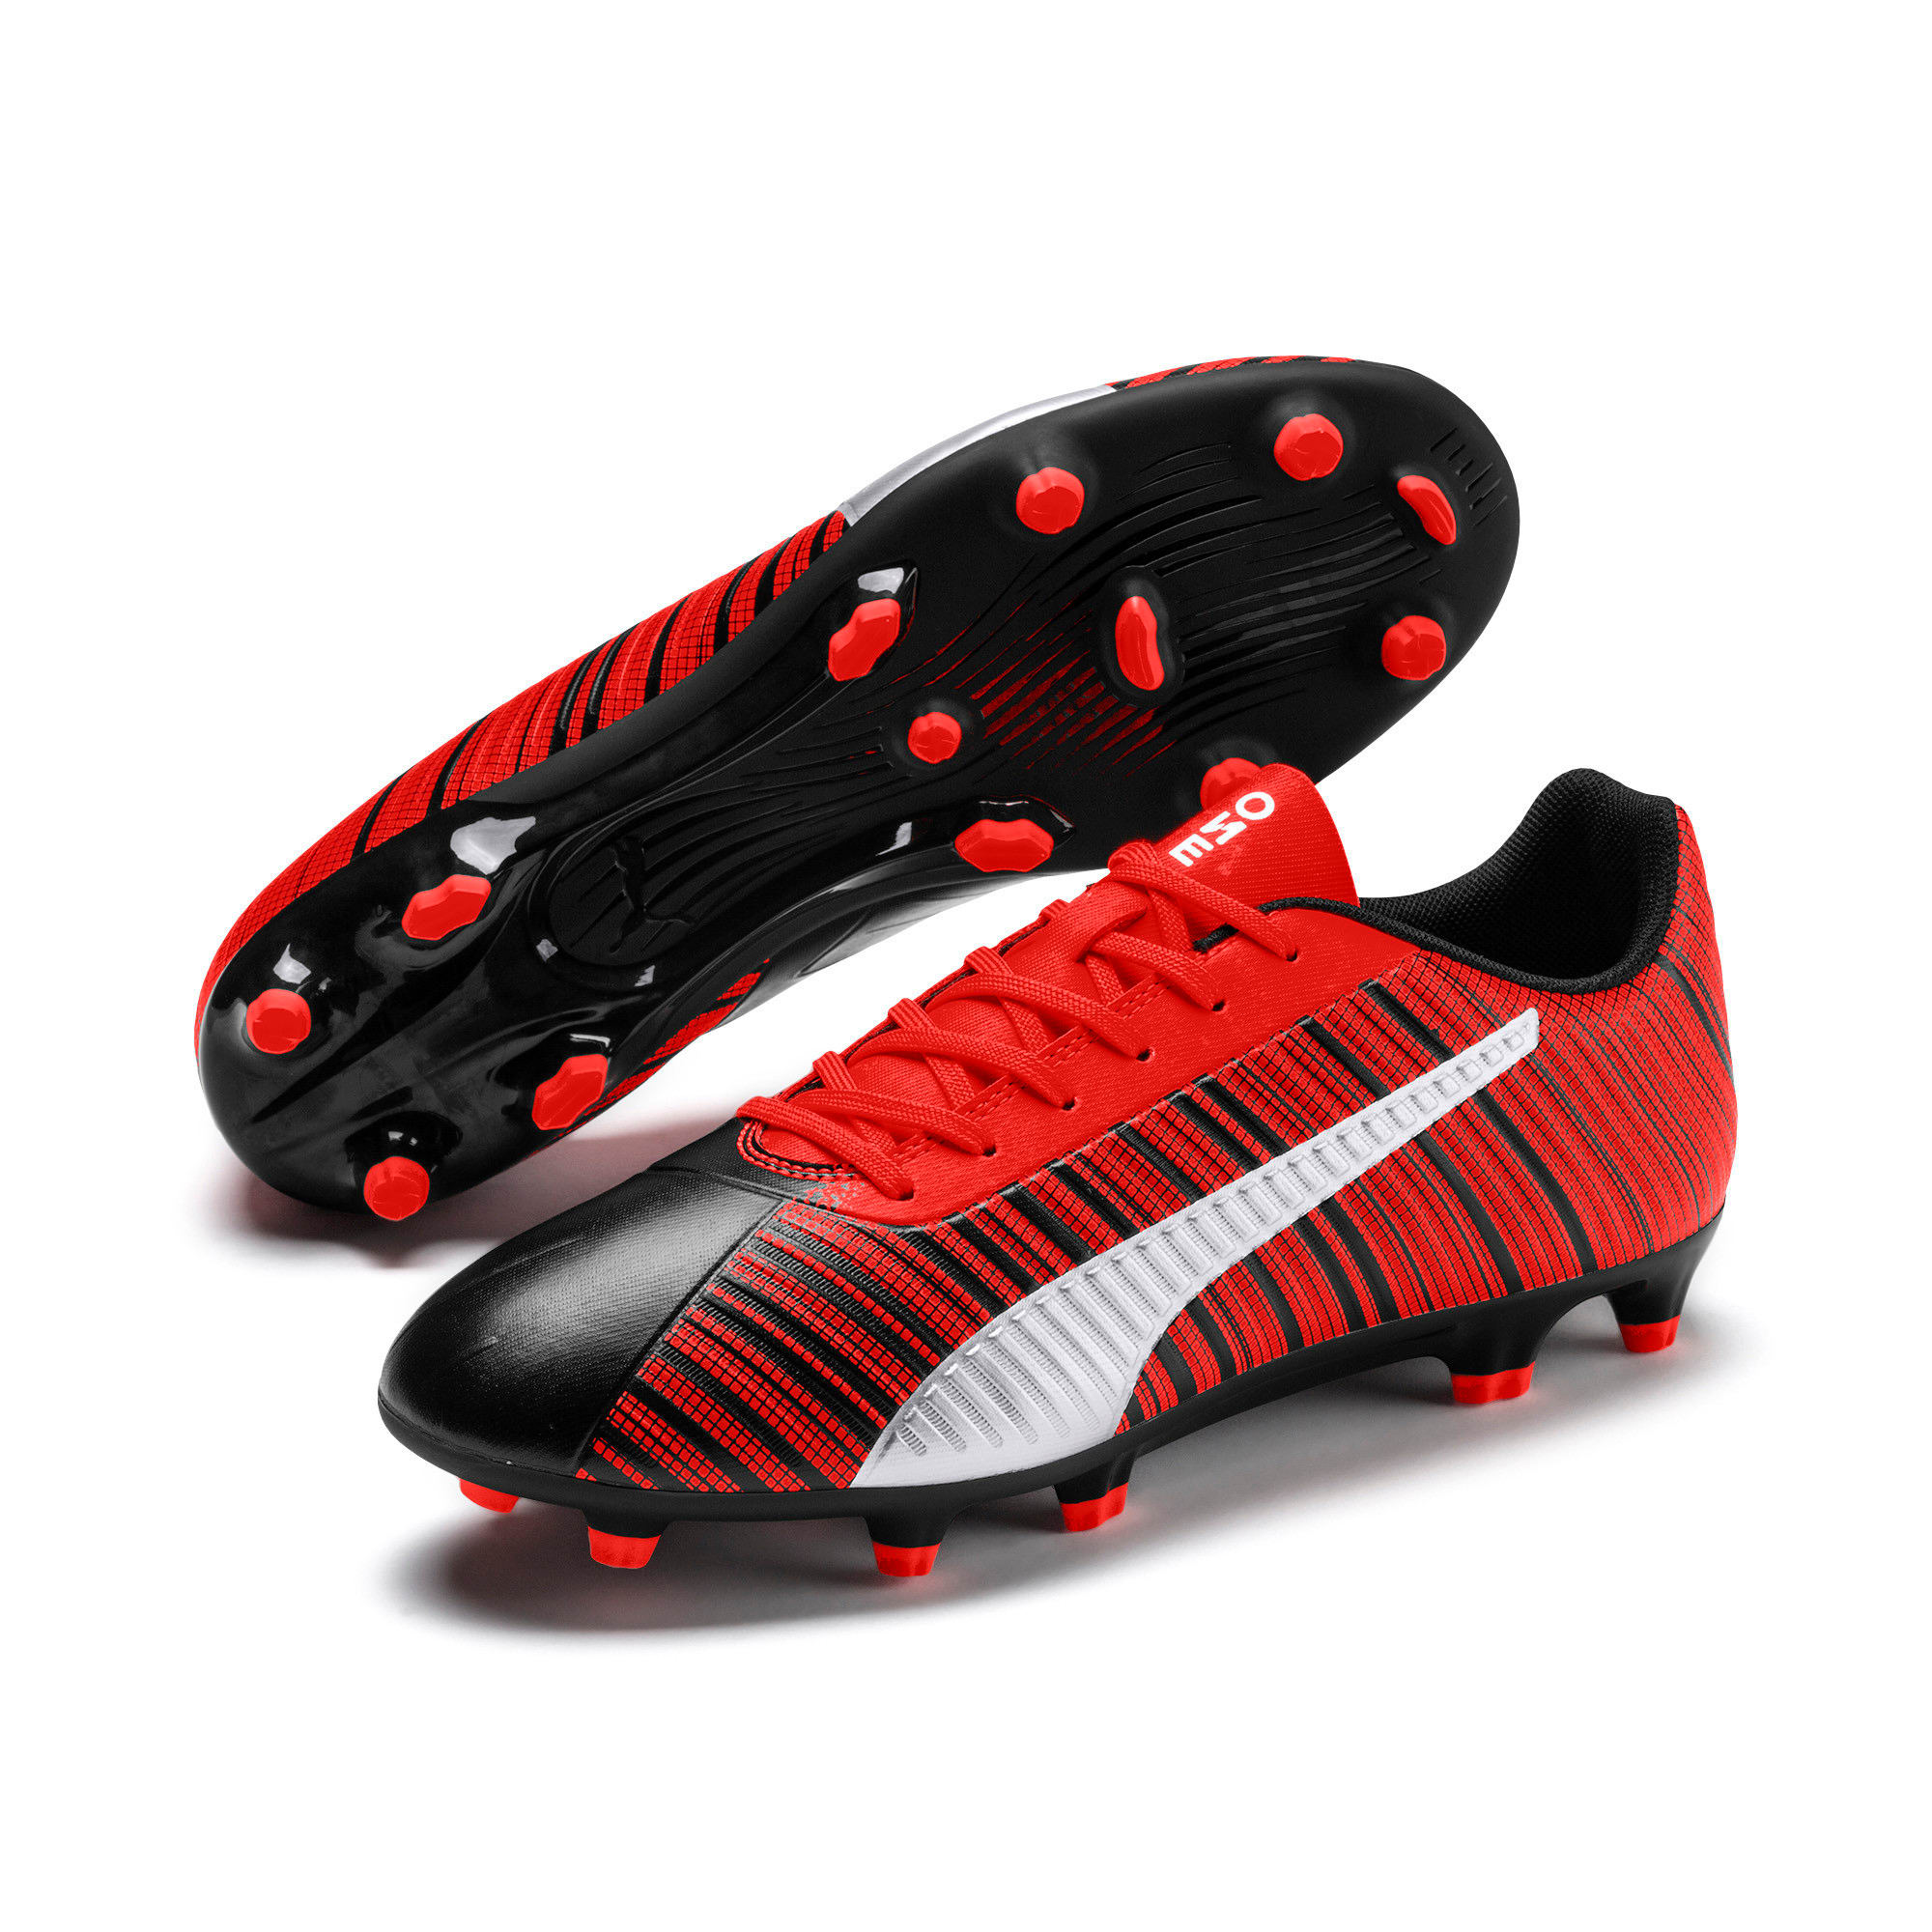 Thumbnail 3 van PUMA ONE 5.4 FG/AG voetbalschoenen voor mannen, Black-Nrgy Red-Aged Silver, medium